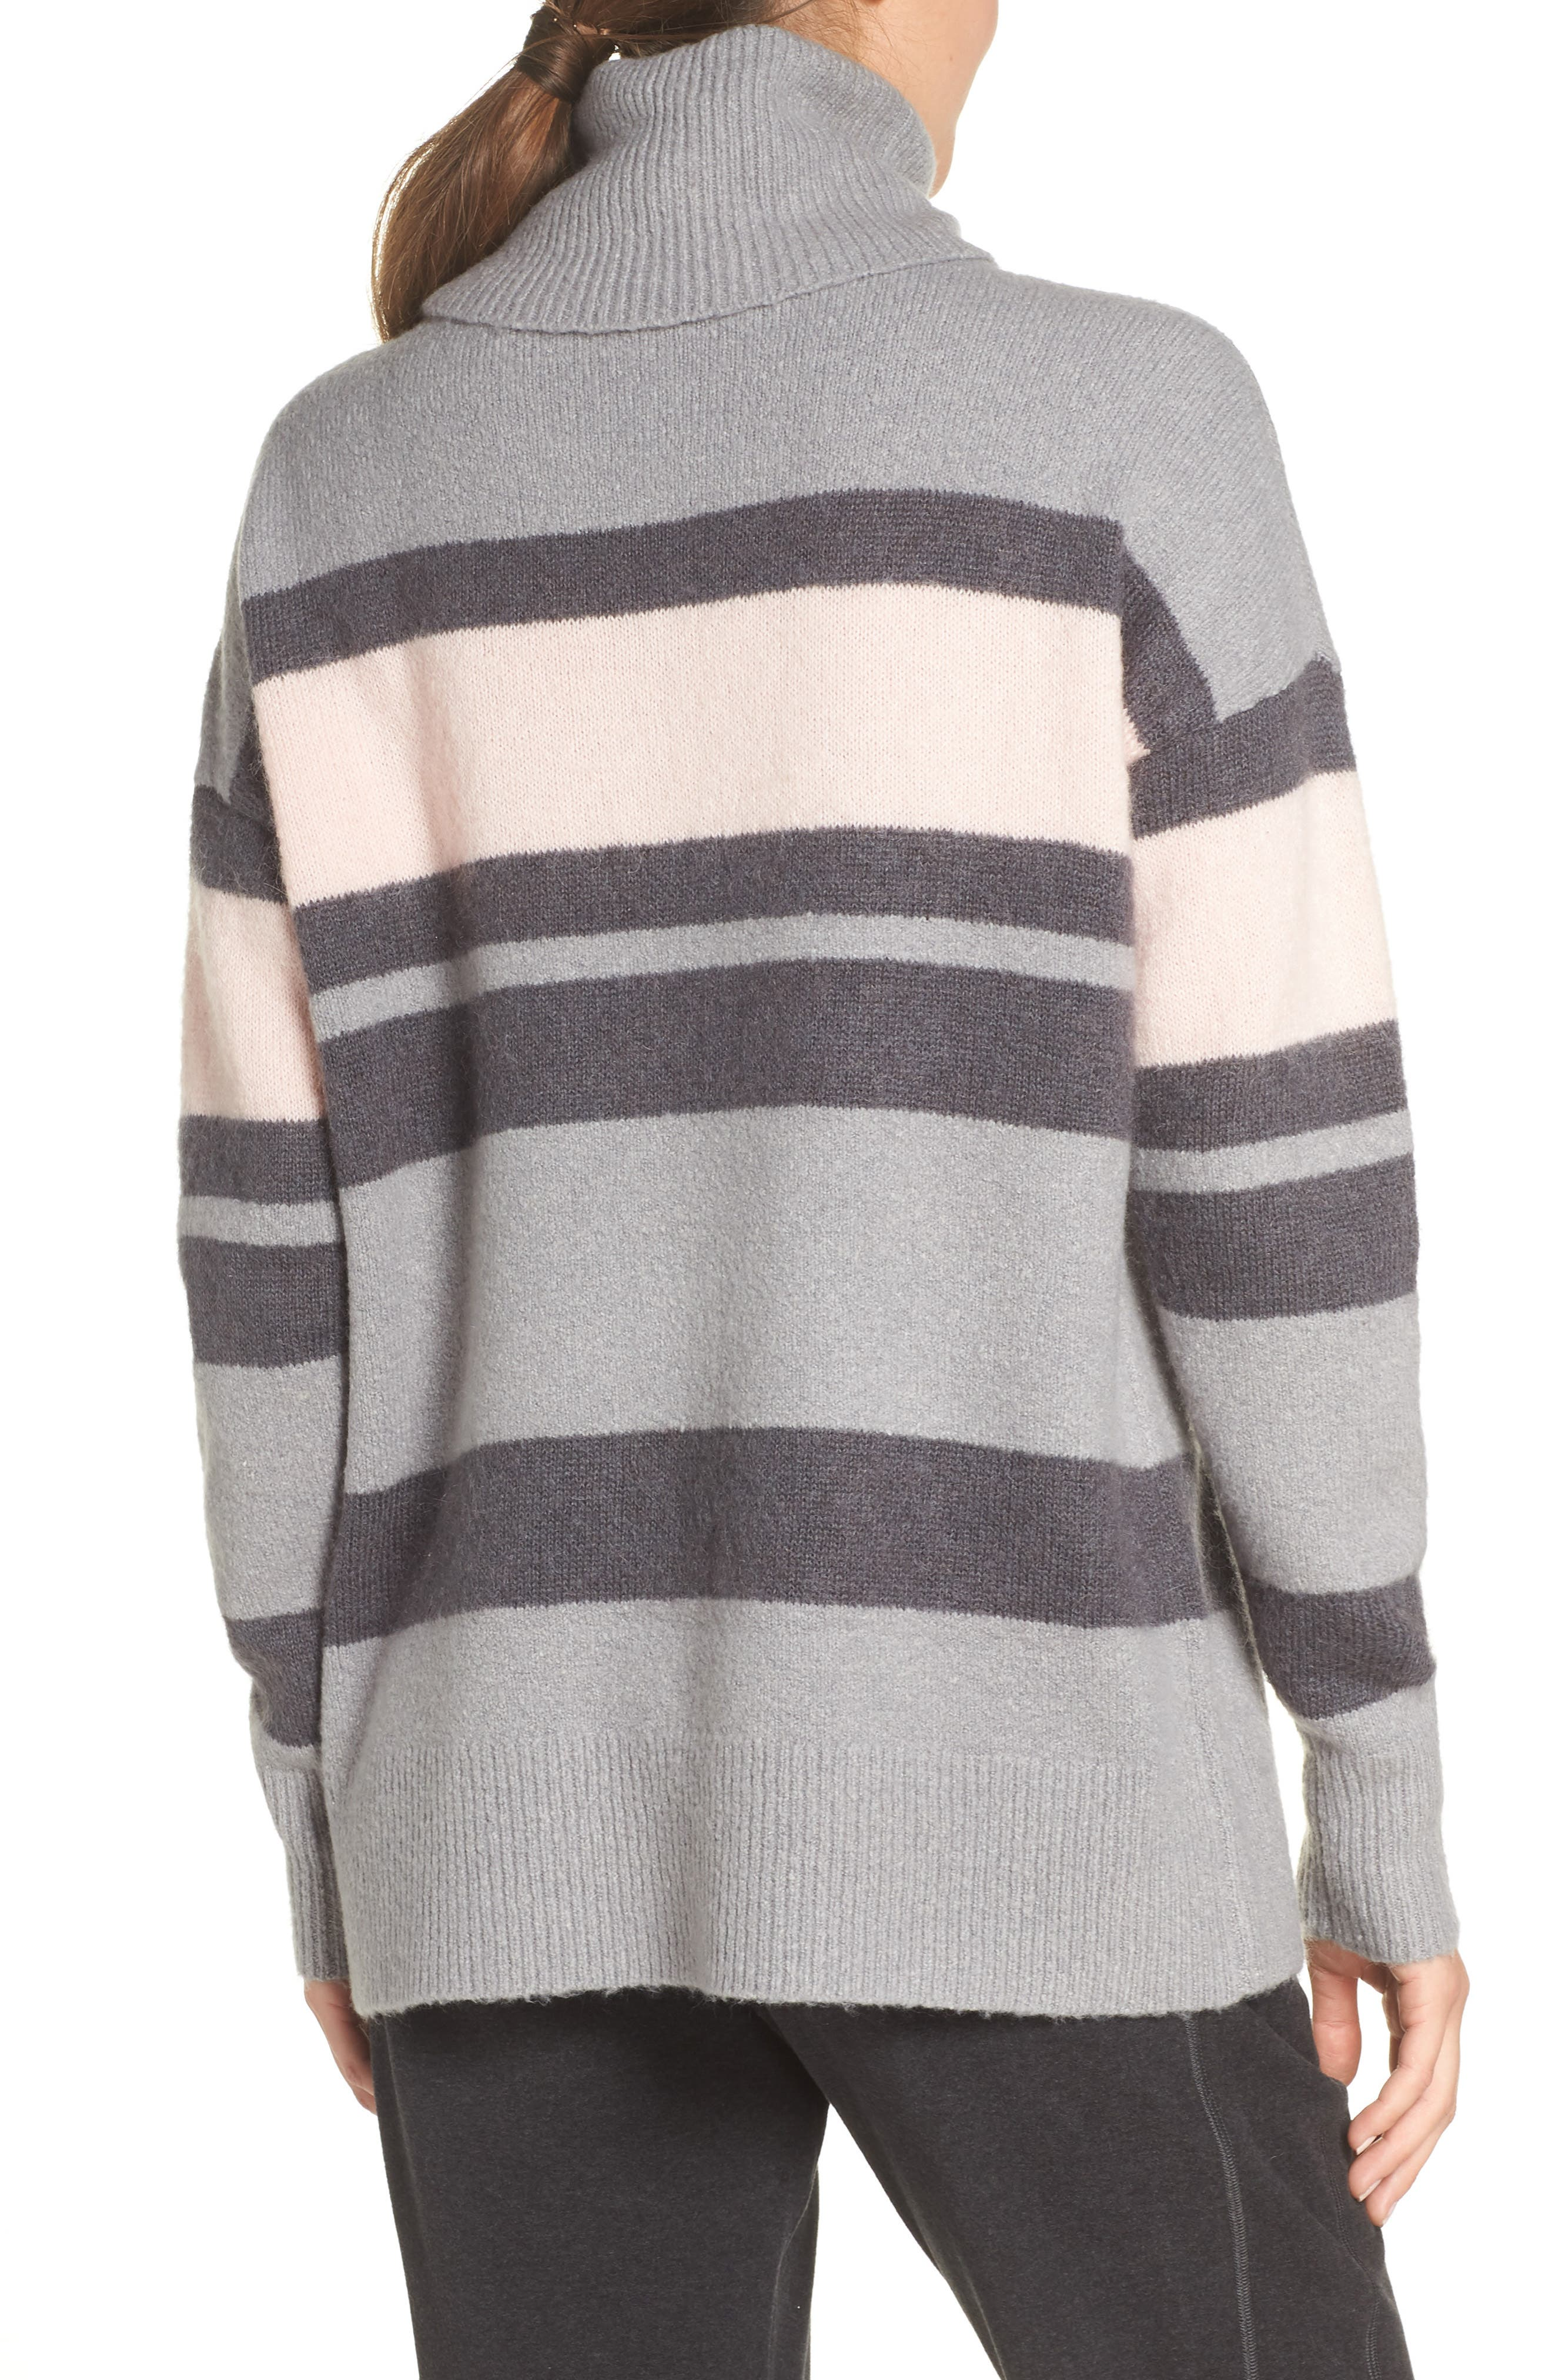 SWEATY BETTY,                             Bloomsbury Sweater,                             Alternate thumbnail 2, color,                             023